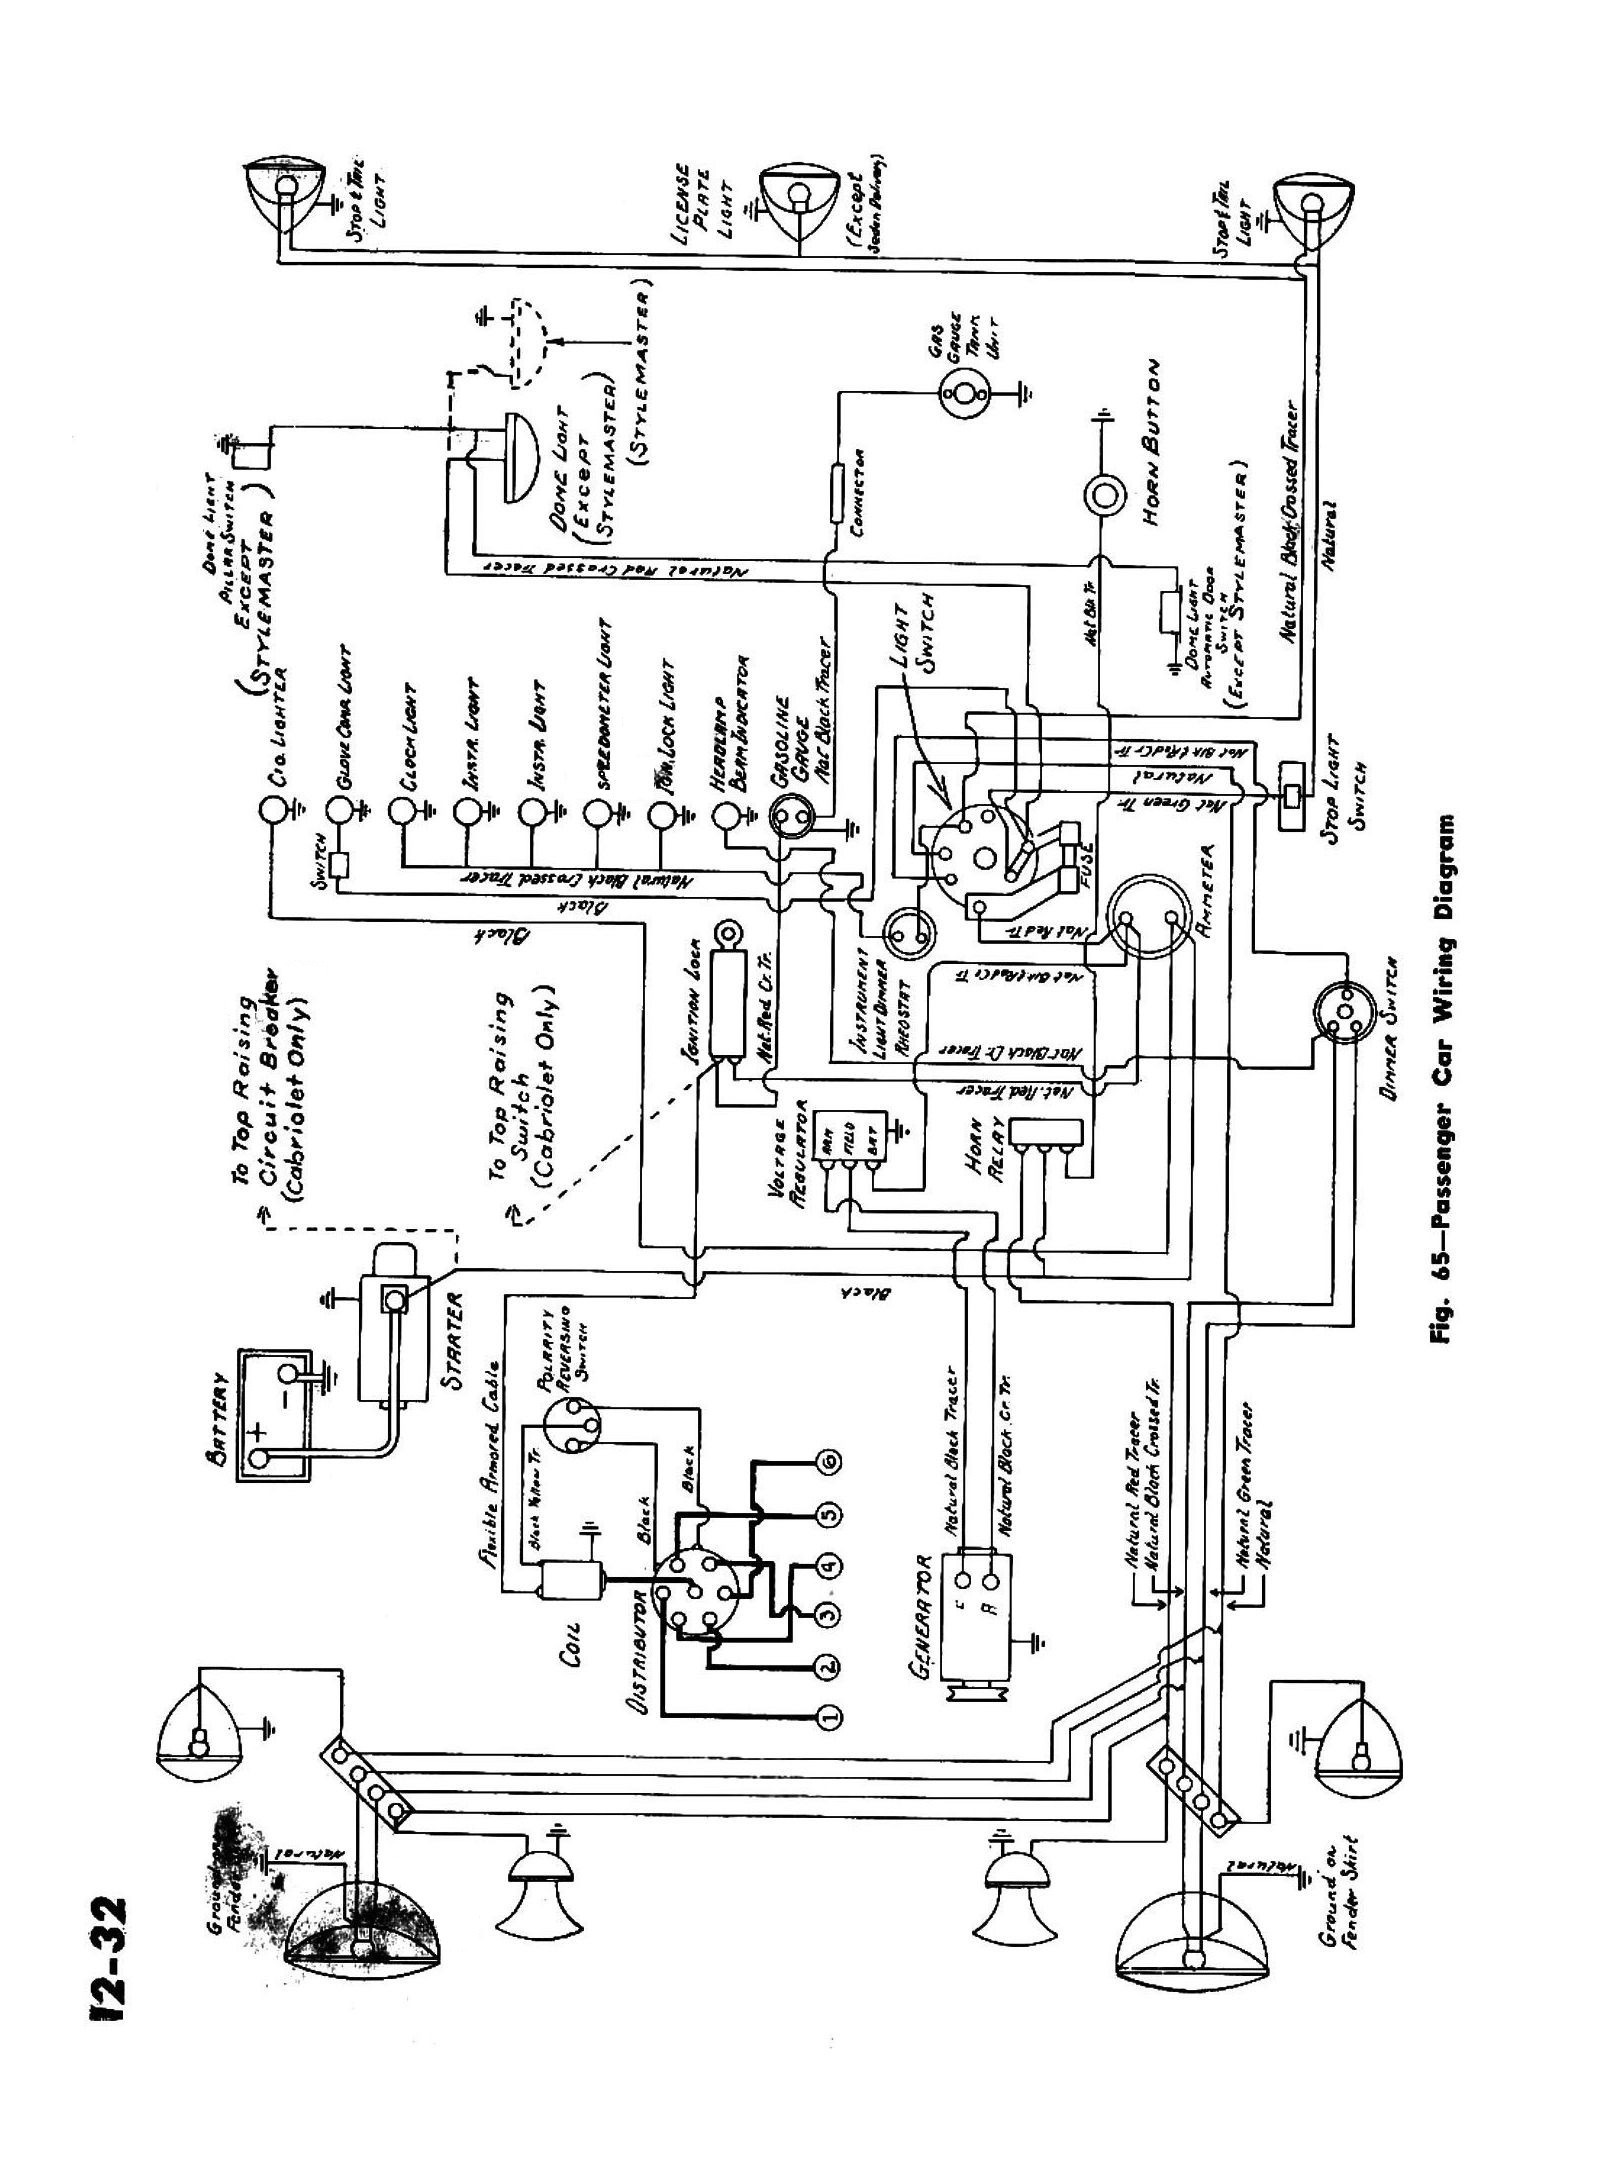 hight resolution of chevy wiring diagrams harley wire diagram 1947 chevy wire diagram